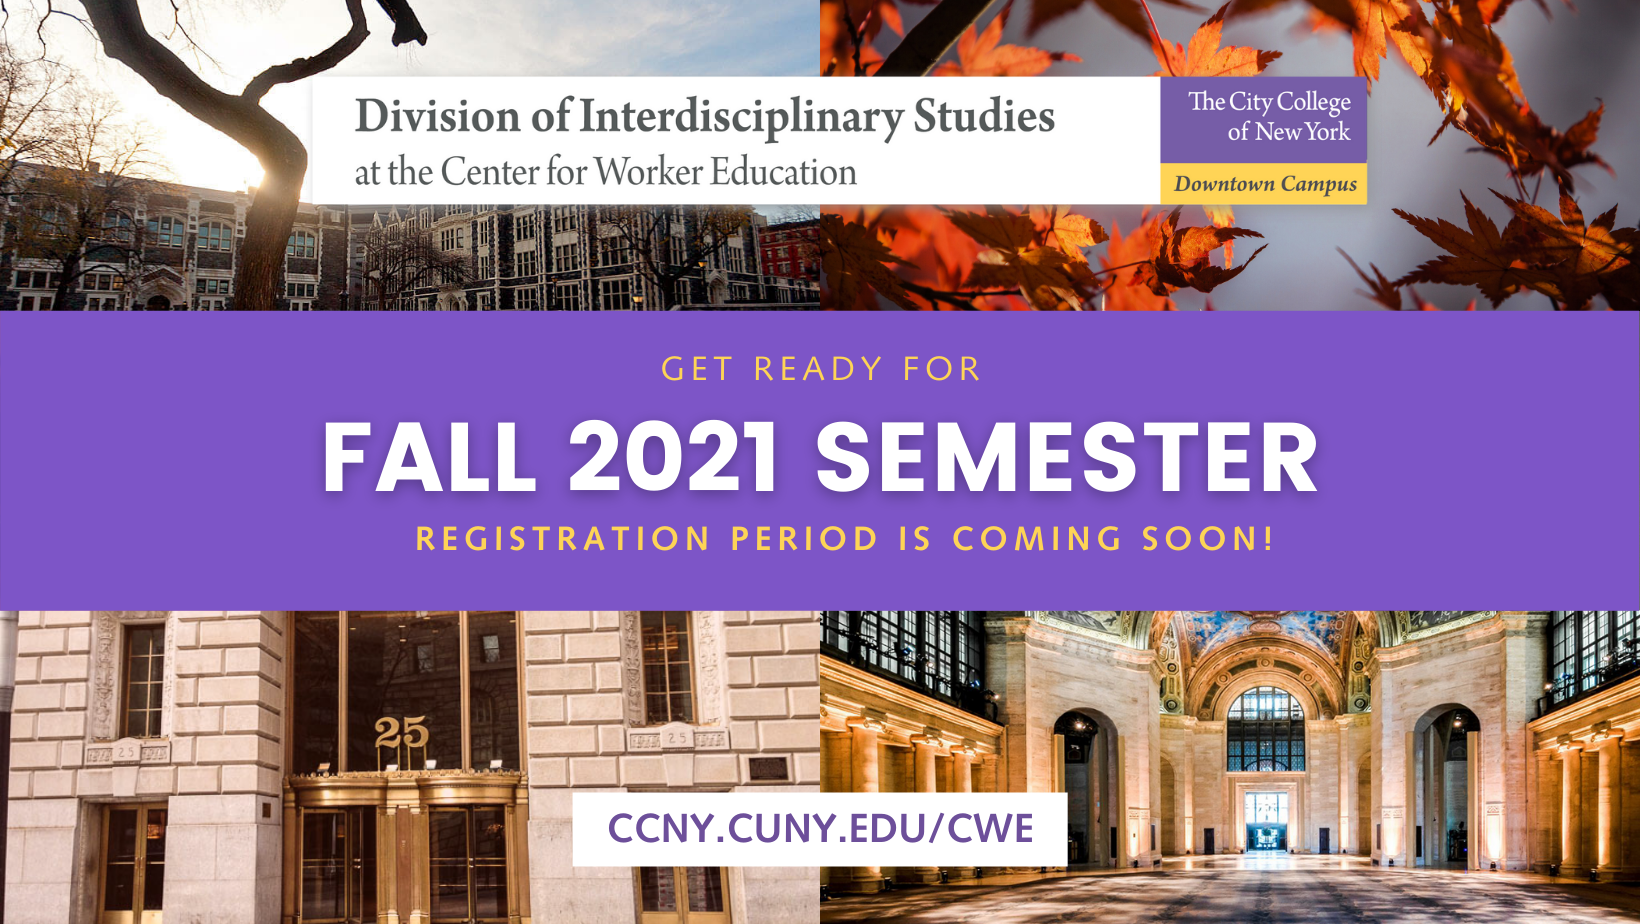 Ccny Calendar Fall 2022.Fall 2021 The City College Of New York